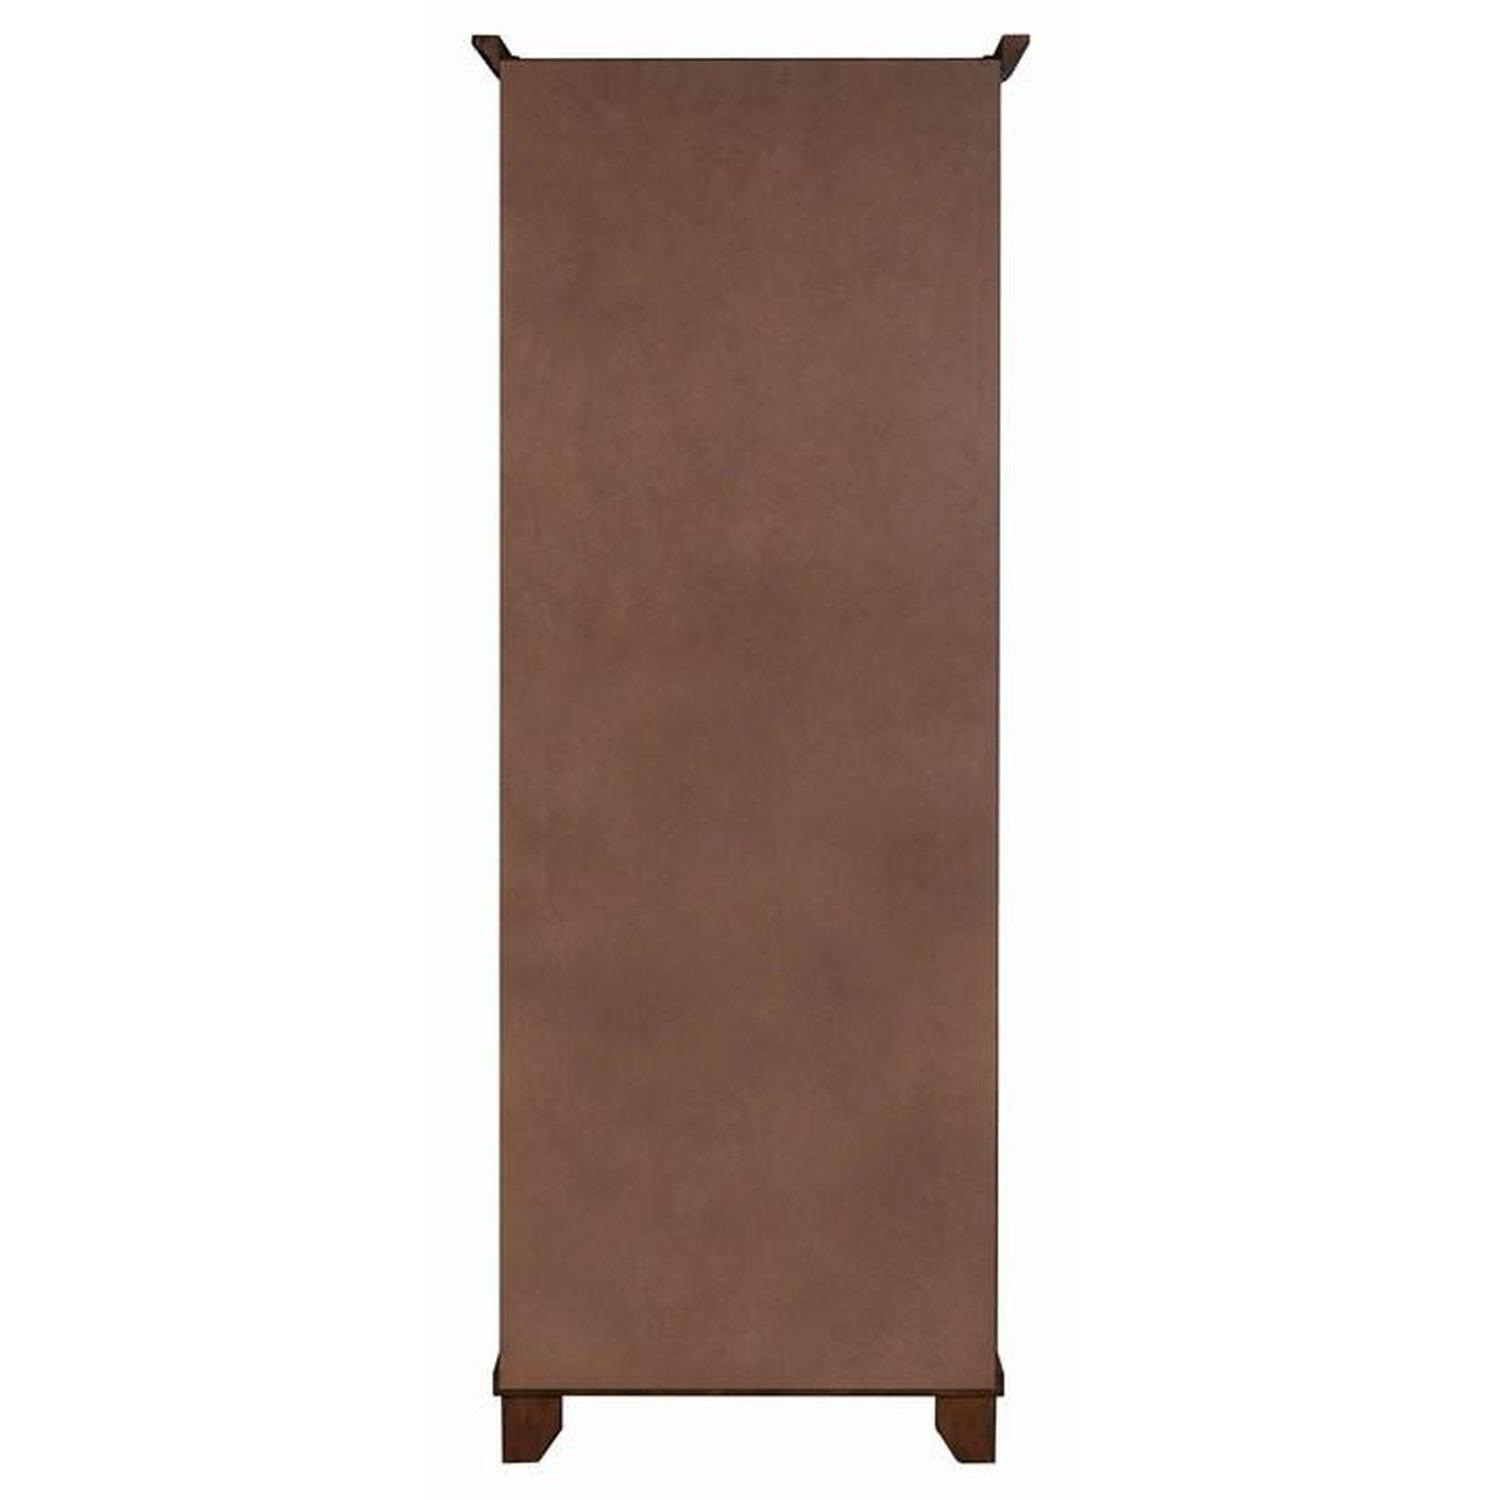 Curio Cabinet in Chestnut Finish w/ Glass Panels - image-5